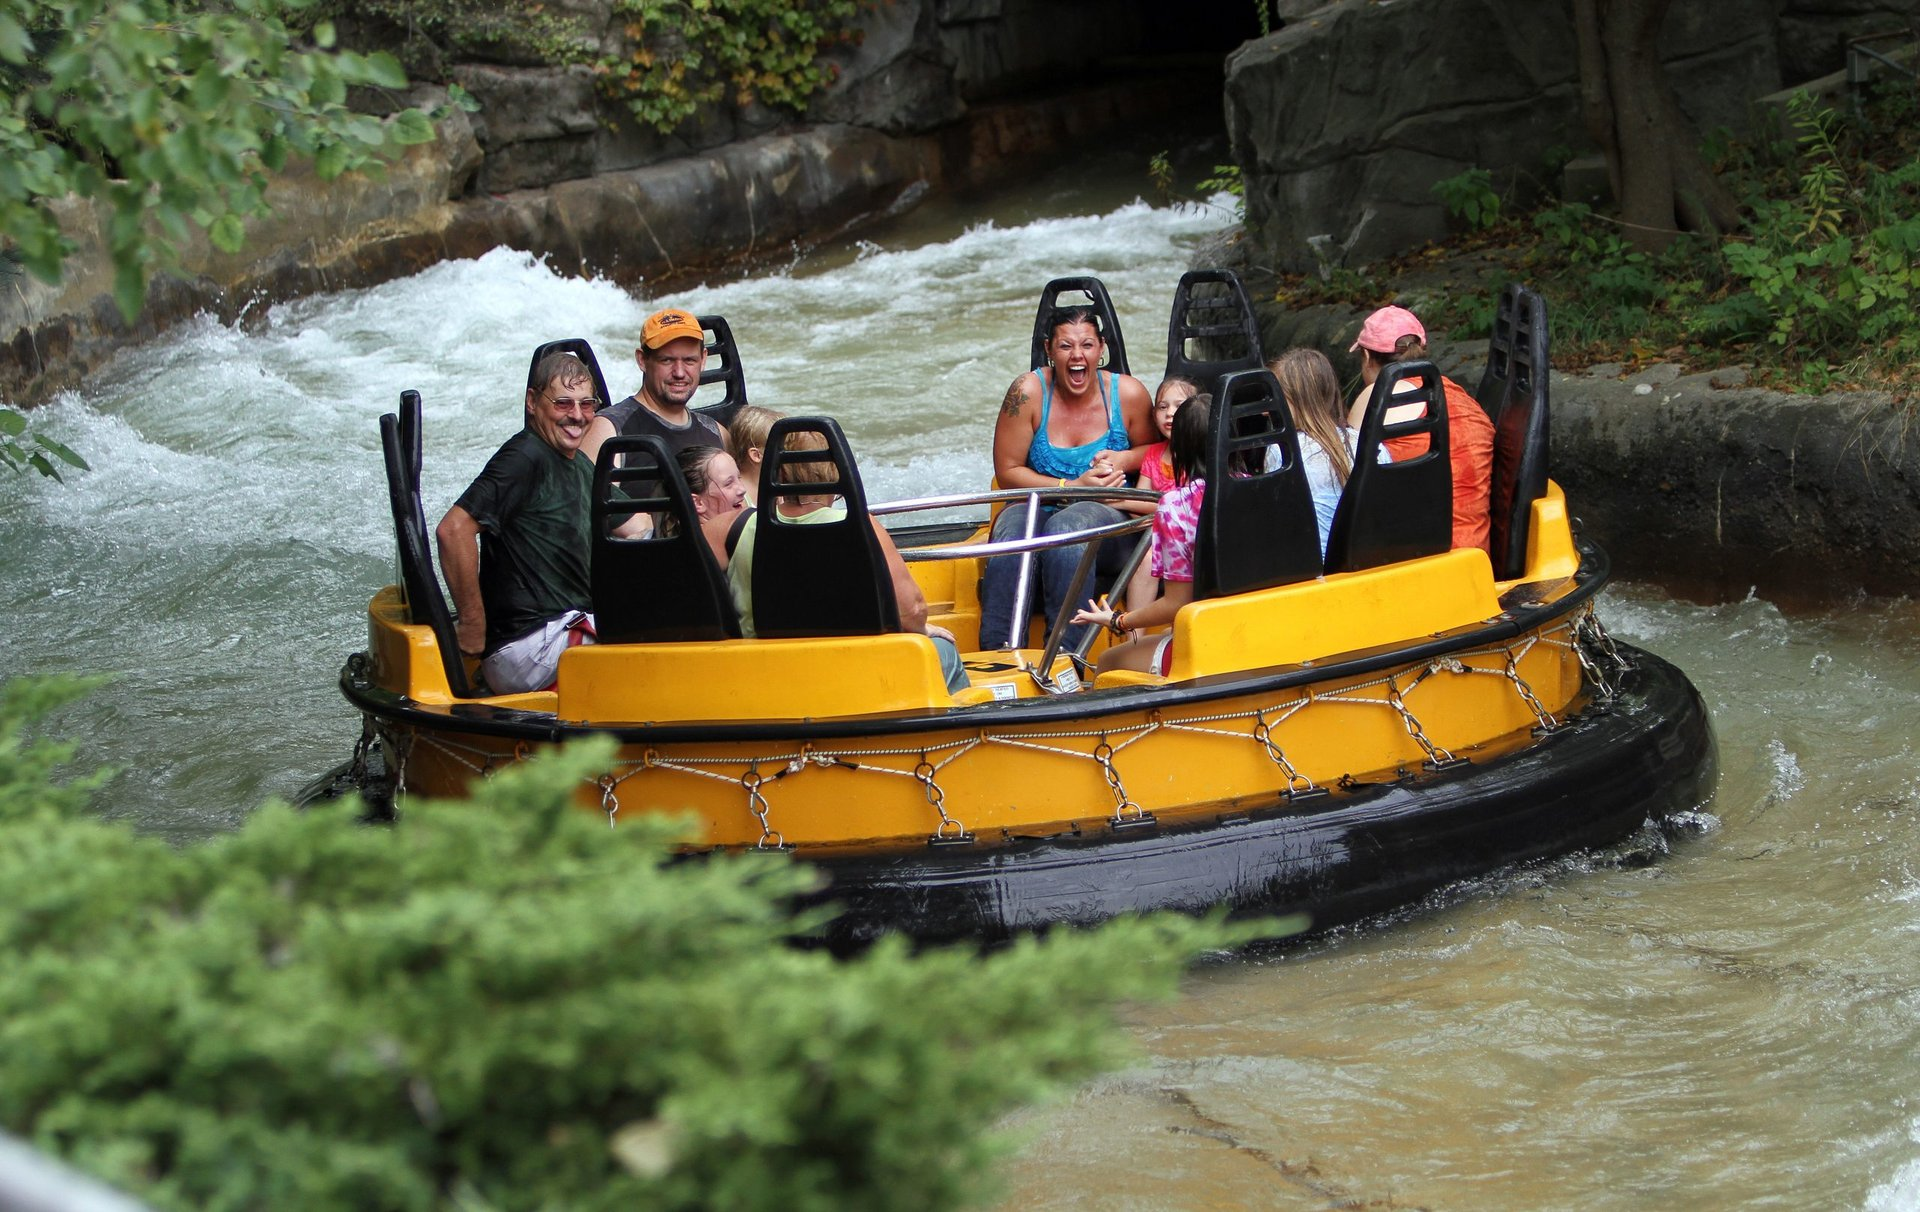 Riders soaked on Roaring Rapids coming out of tunnel at Six Flags